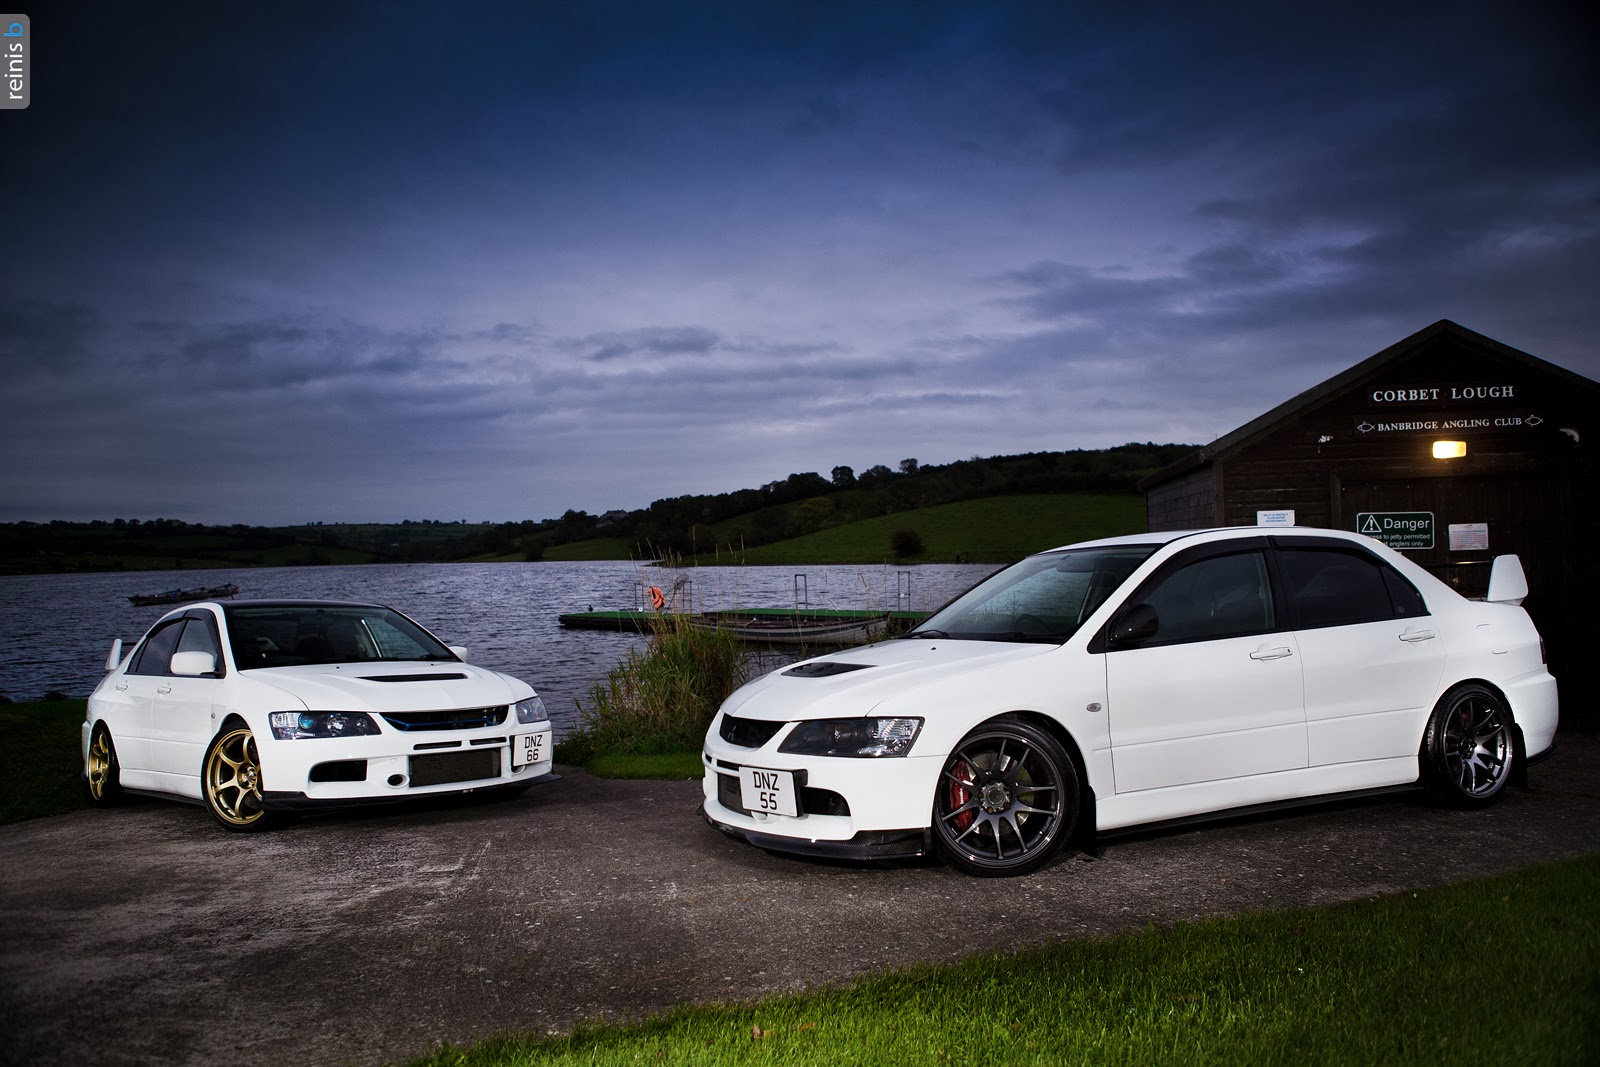 reinis babrovskis photography mitsubishi lancer evo ix gt duo. Black Bedroom Furniture Sets. Home Design Ideas